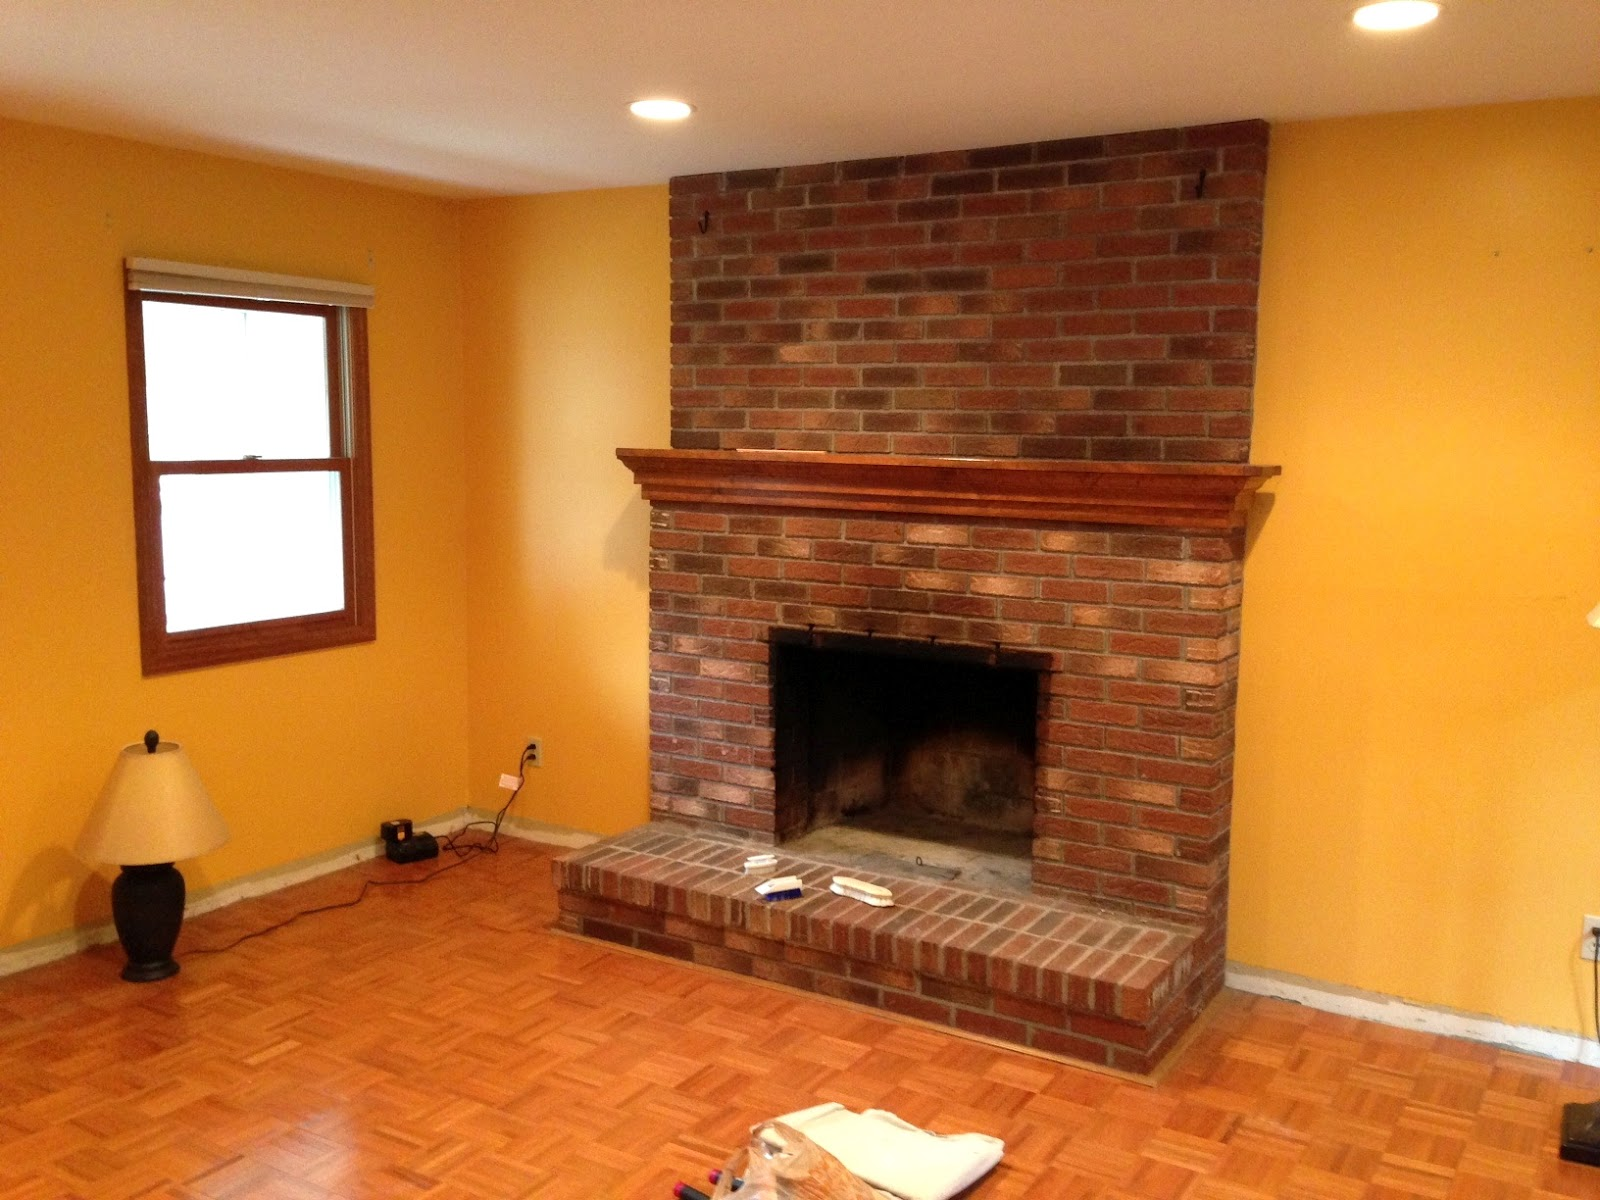 wallpaper brick fireplace – wallpaper